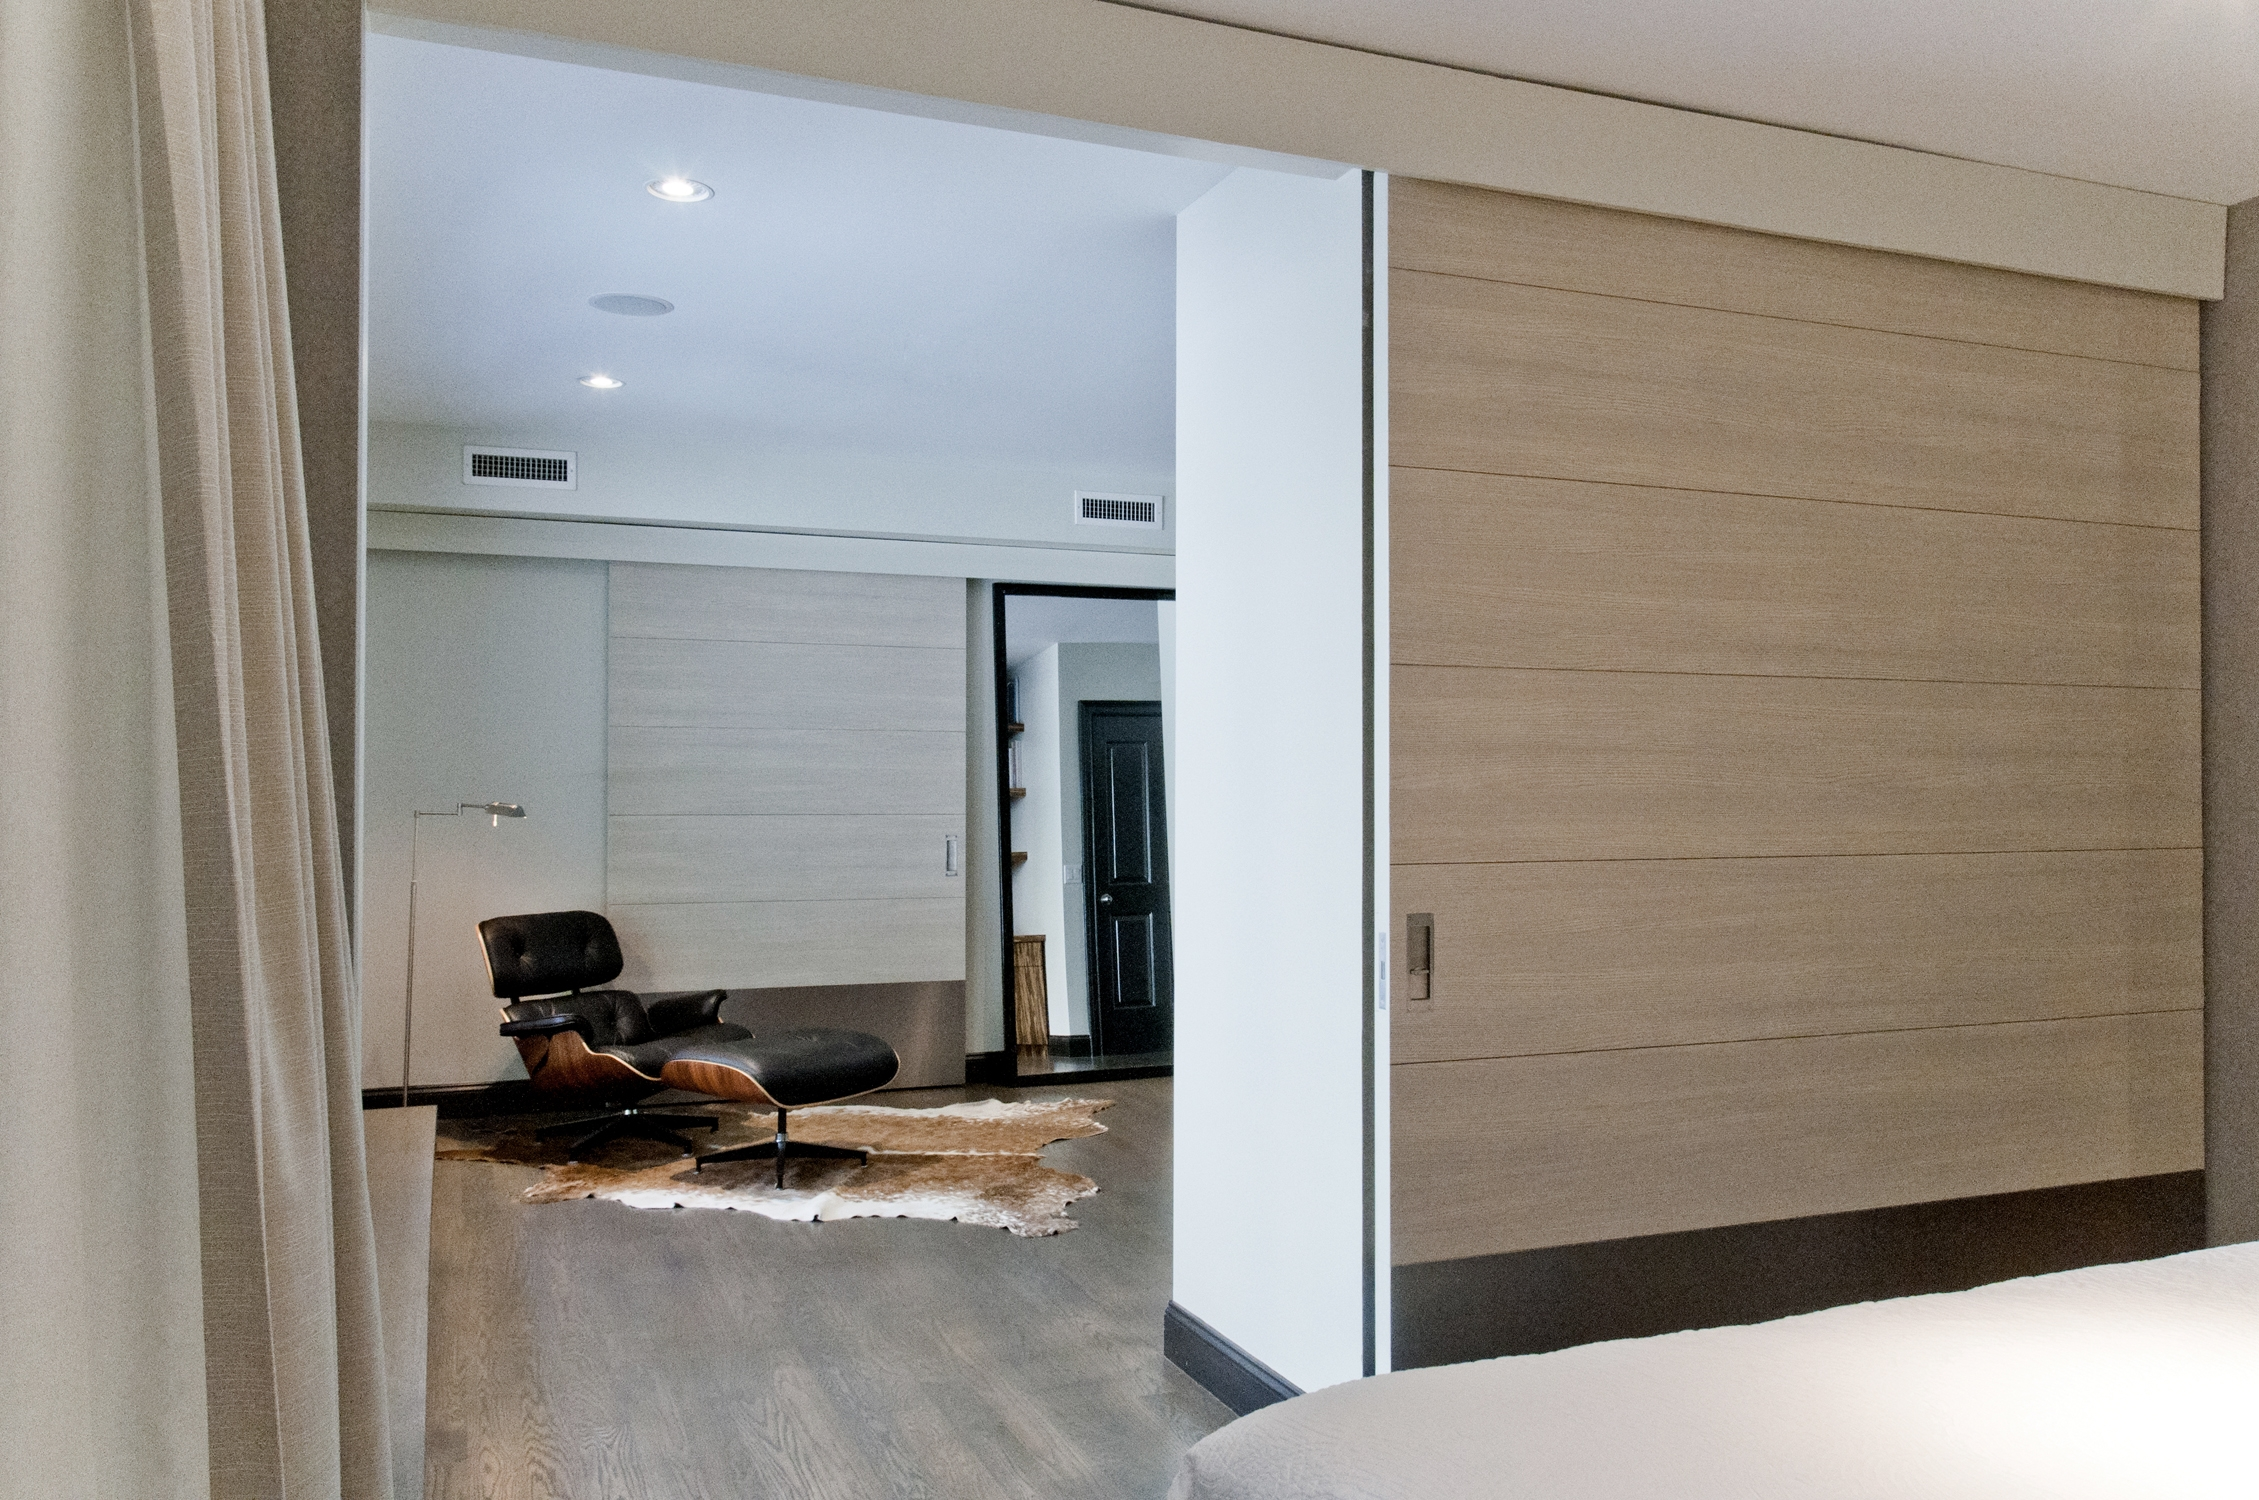 Large Sliding Doors InternalLarge Sliding Doors Internal